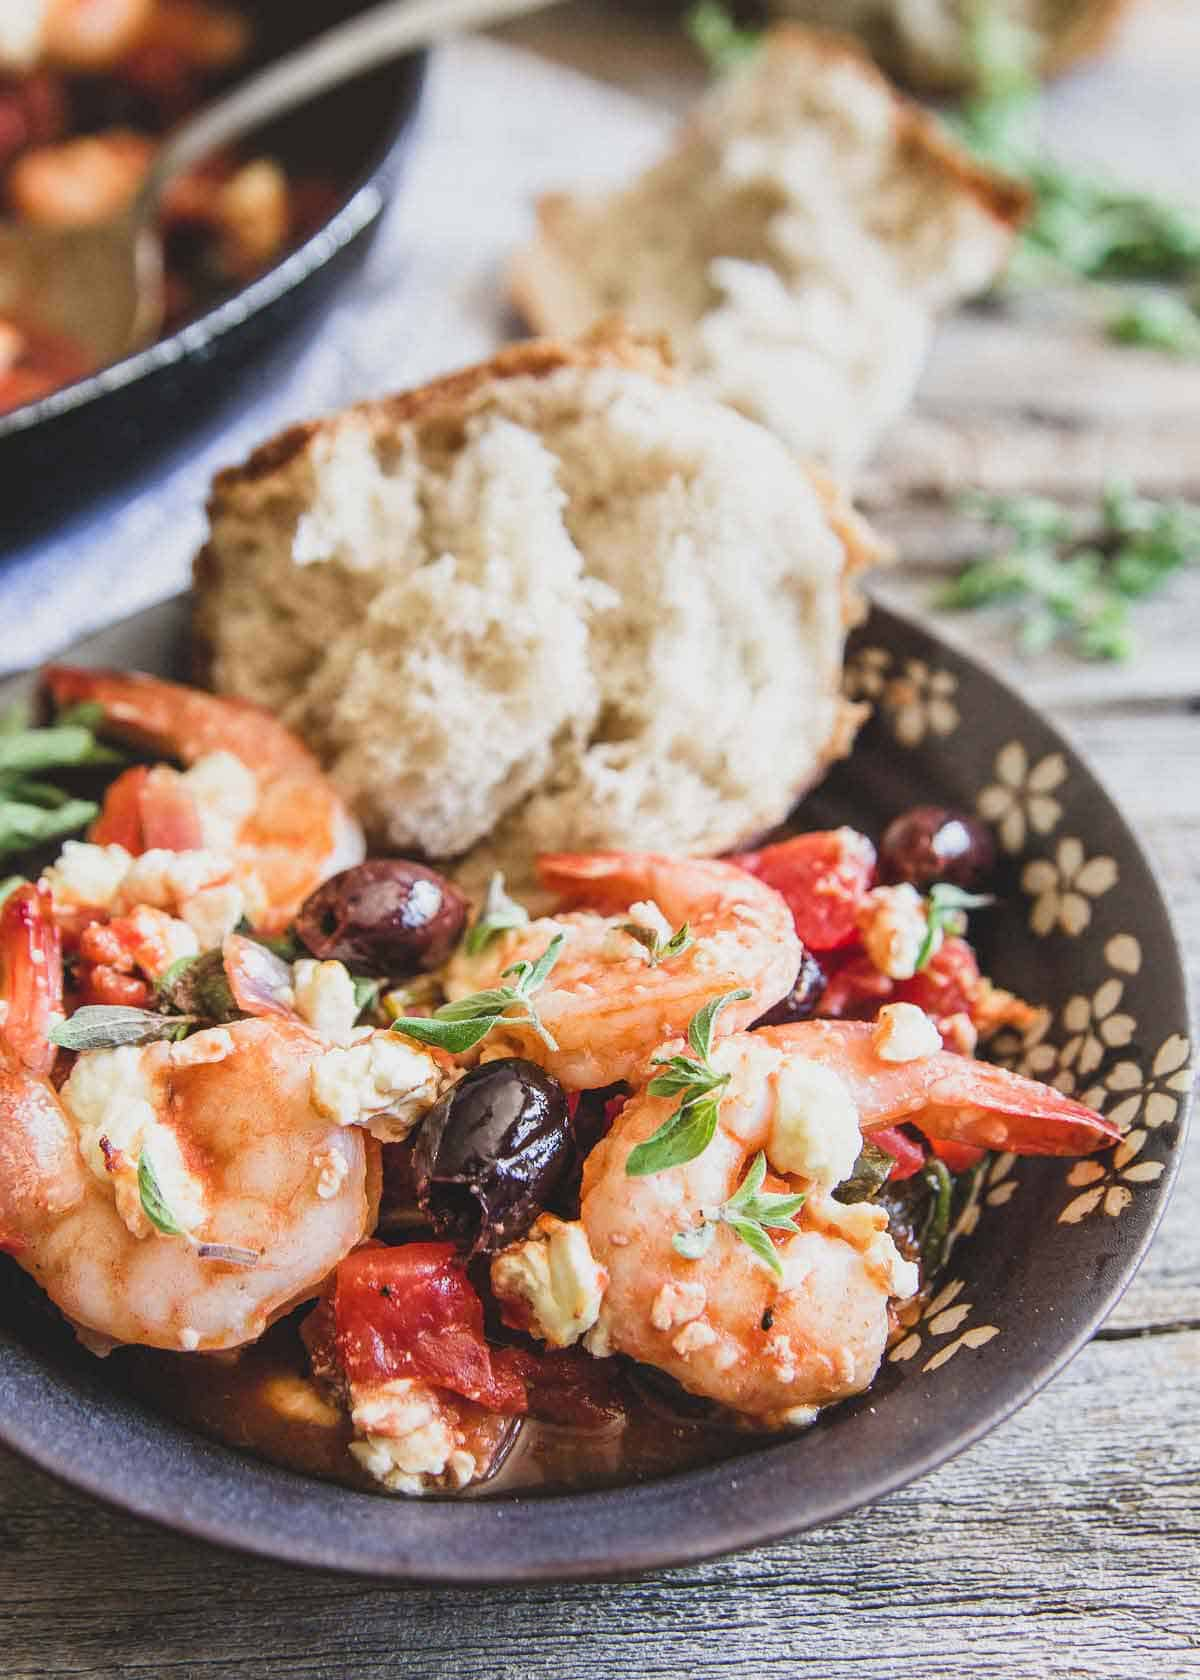 This easy Greek shrimp recipe is made entirely in the skillet with tomatoes, Kalamata olives, feta and lots of lemon and oregano.